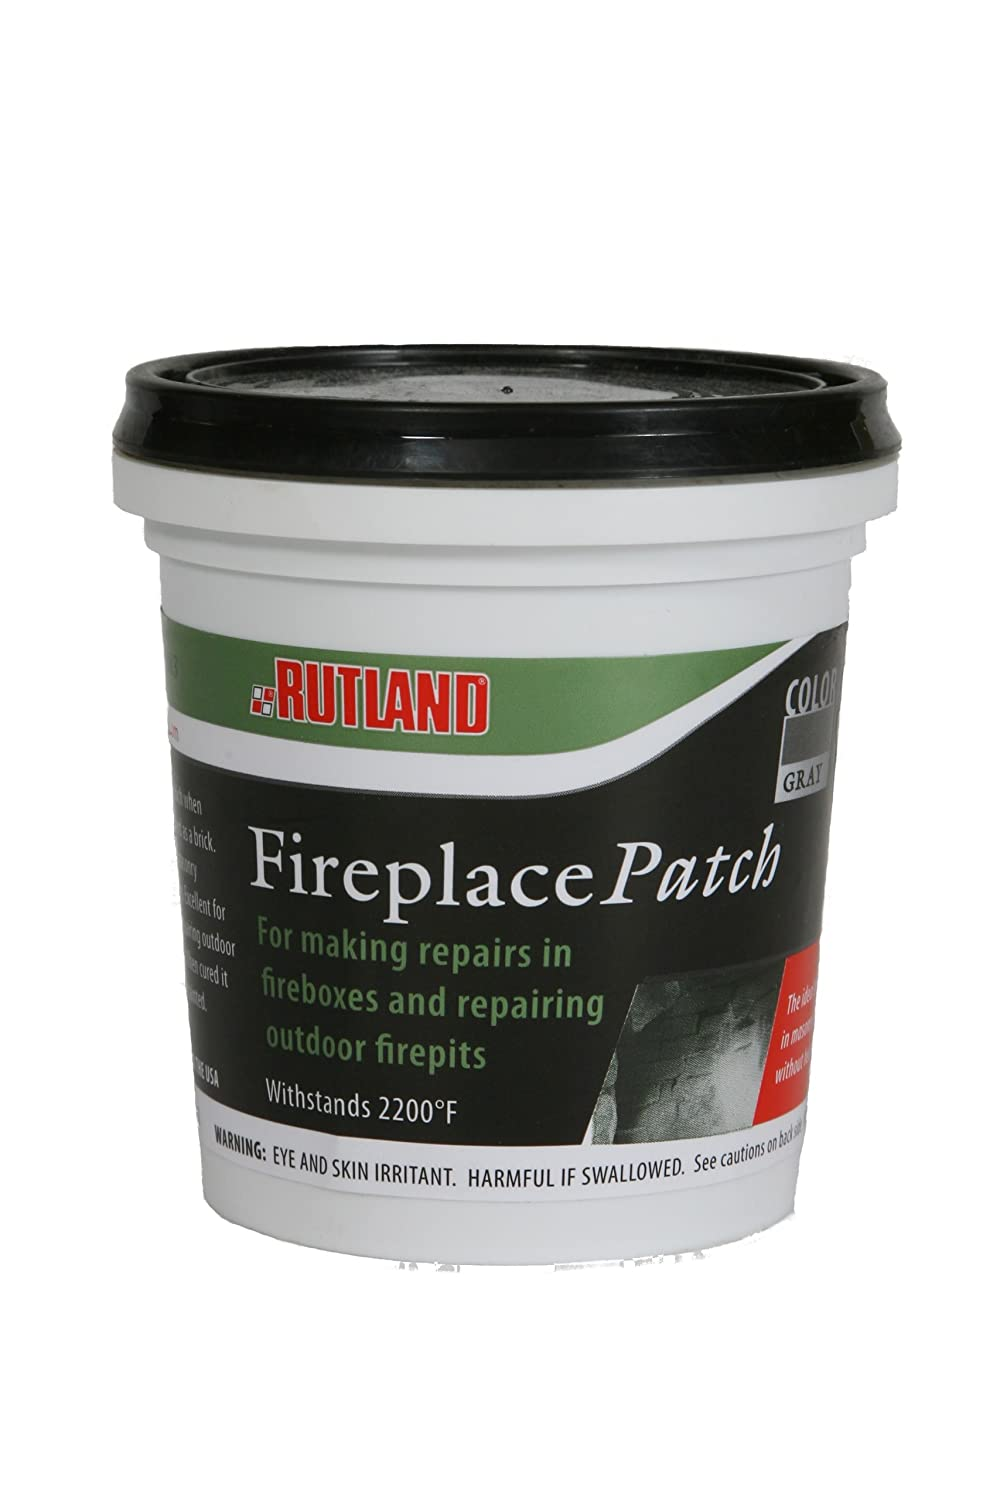 Rutland Products Fireplace Patch, Putty Grey, 1.5 lbs 62